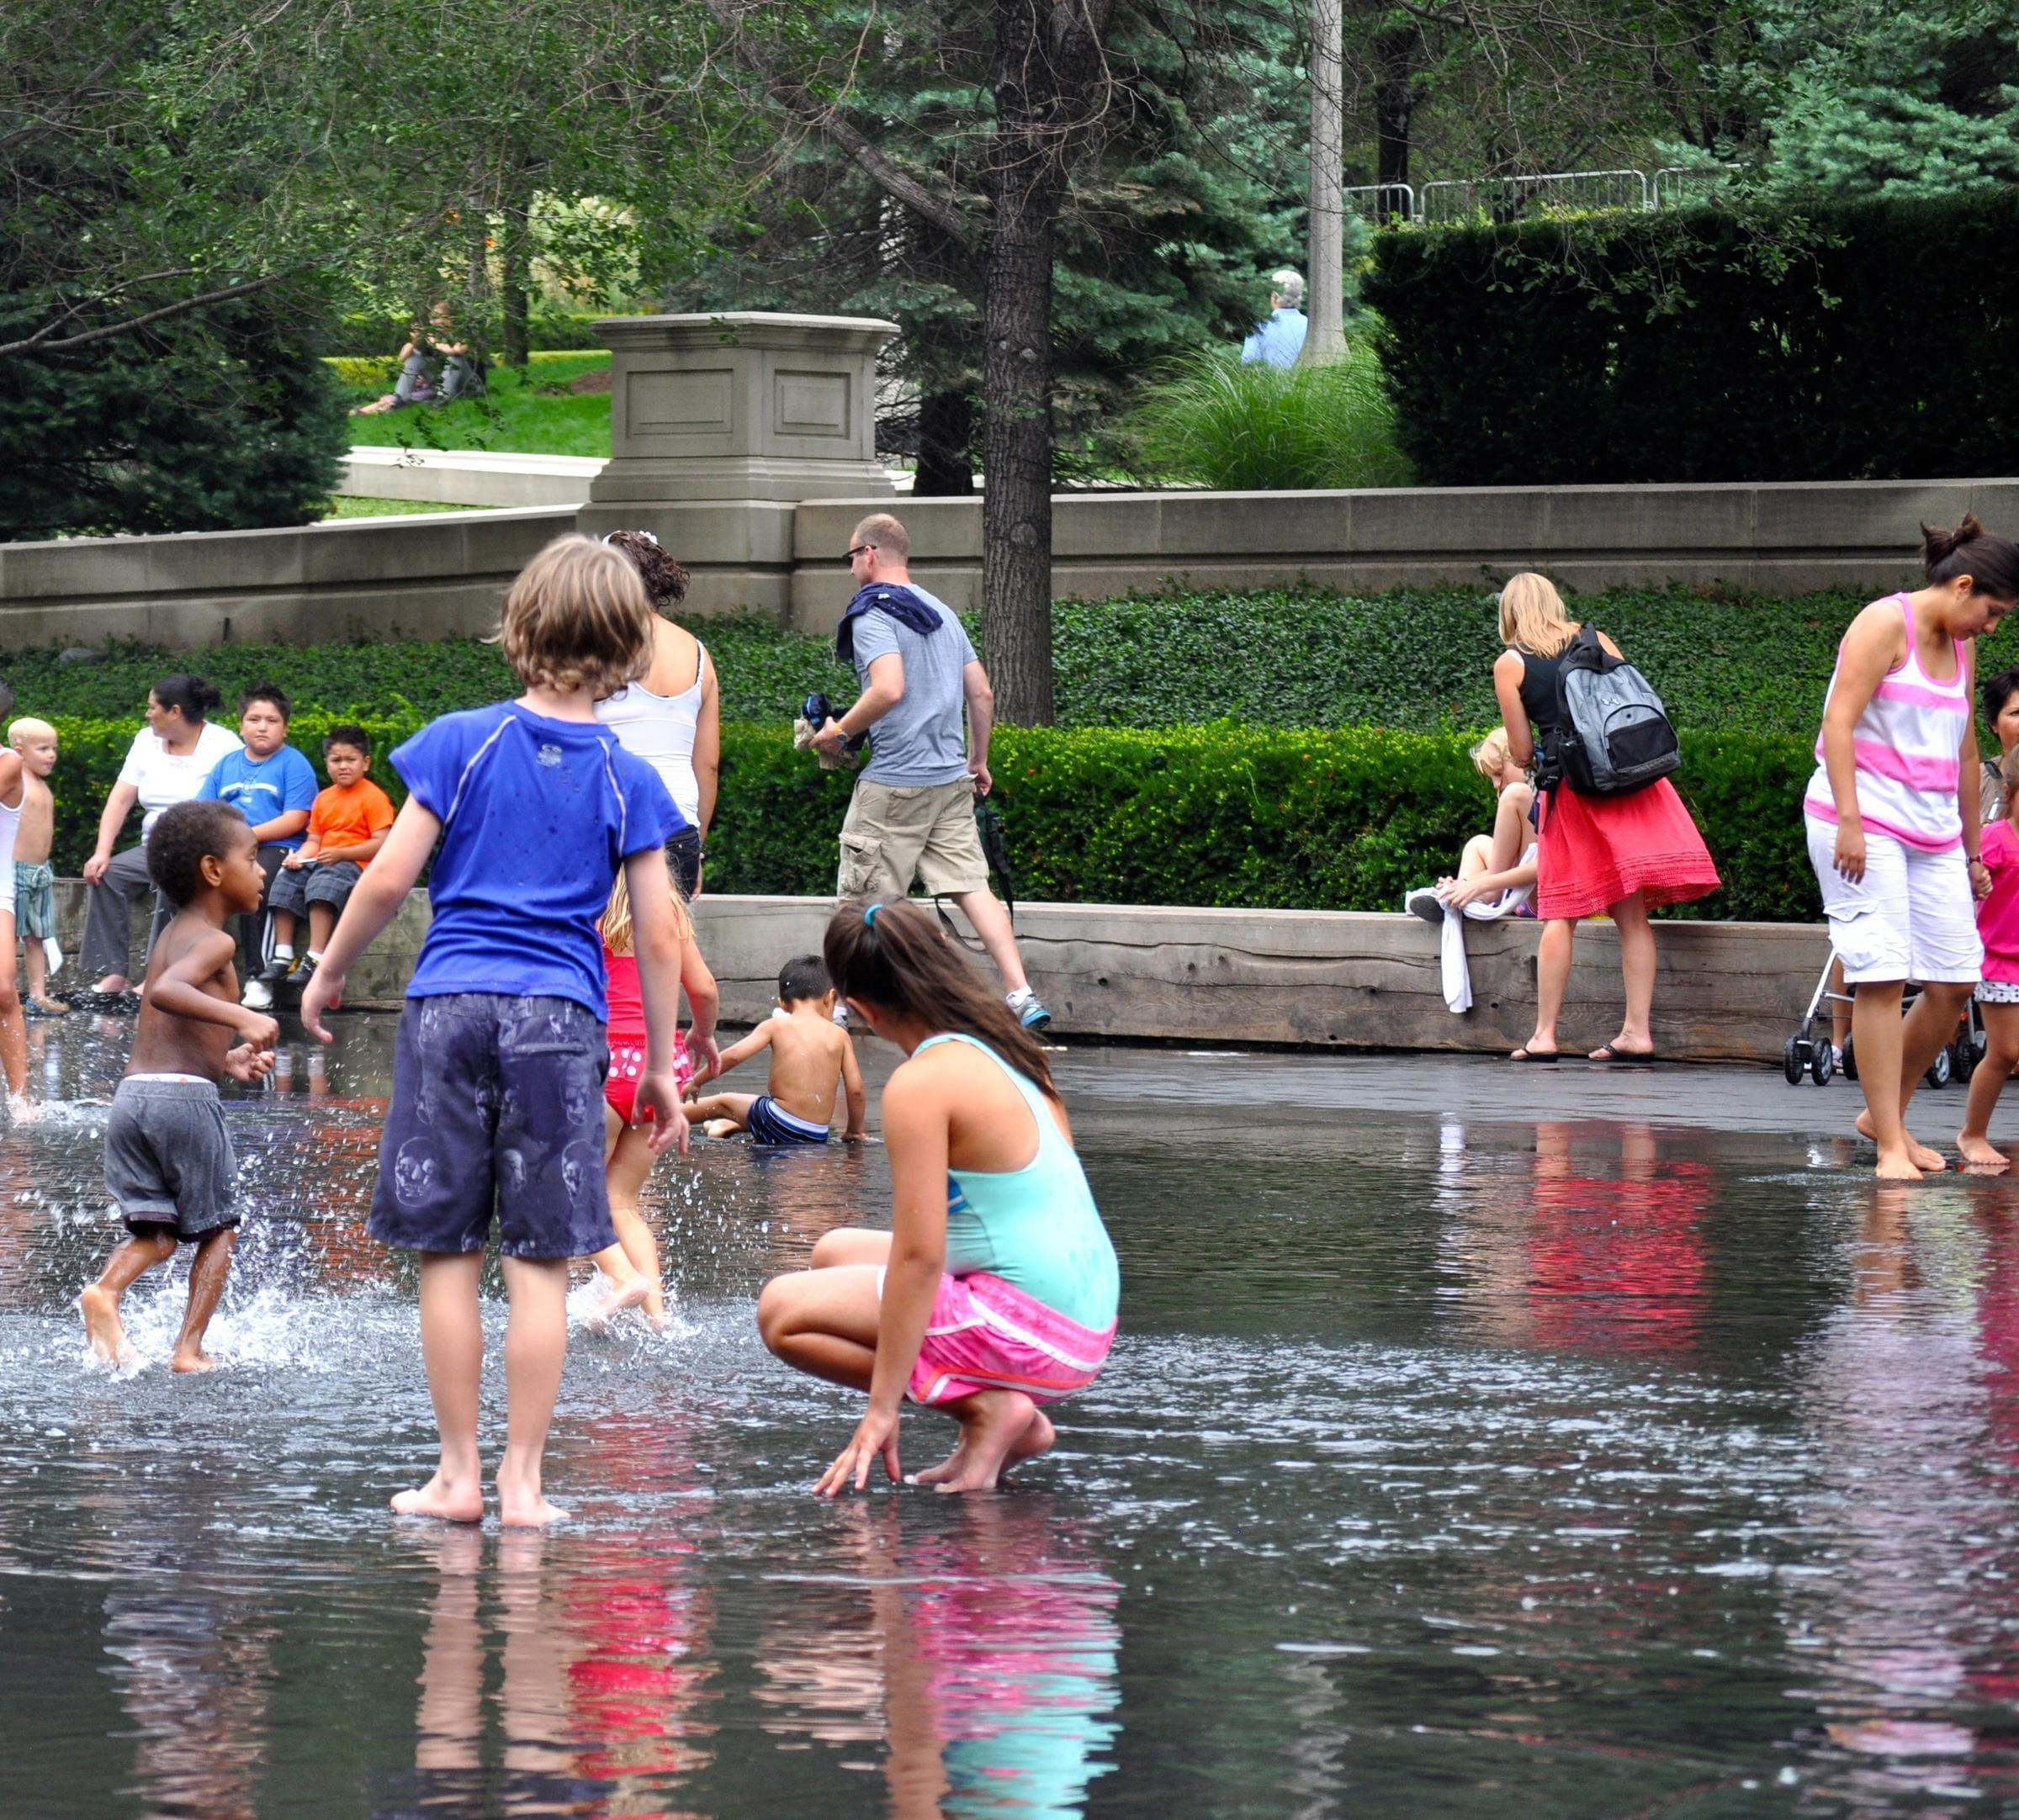 People playing in a fountain during hot weather.